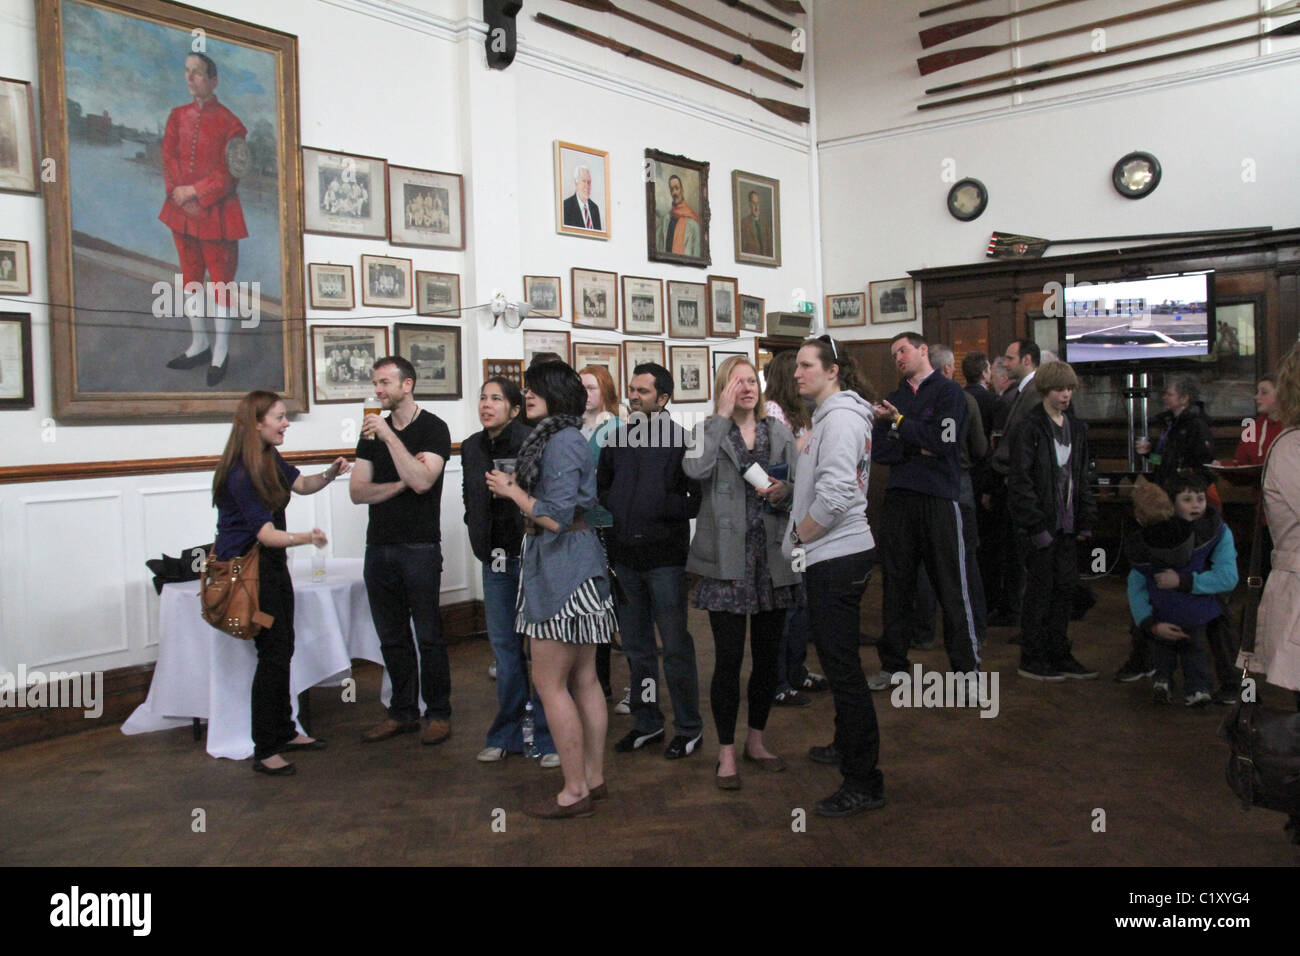 UK. SPECTATORS AT  OXFORD VS. CAMBRIDGE BOAT RACE AT WIMBLEDON ROWING CLUB BY THAMES RIVER - Stock Image